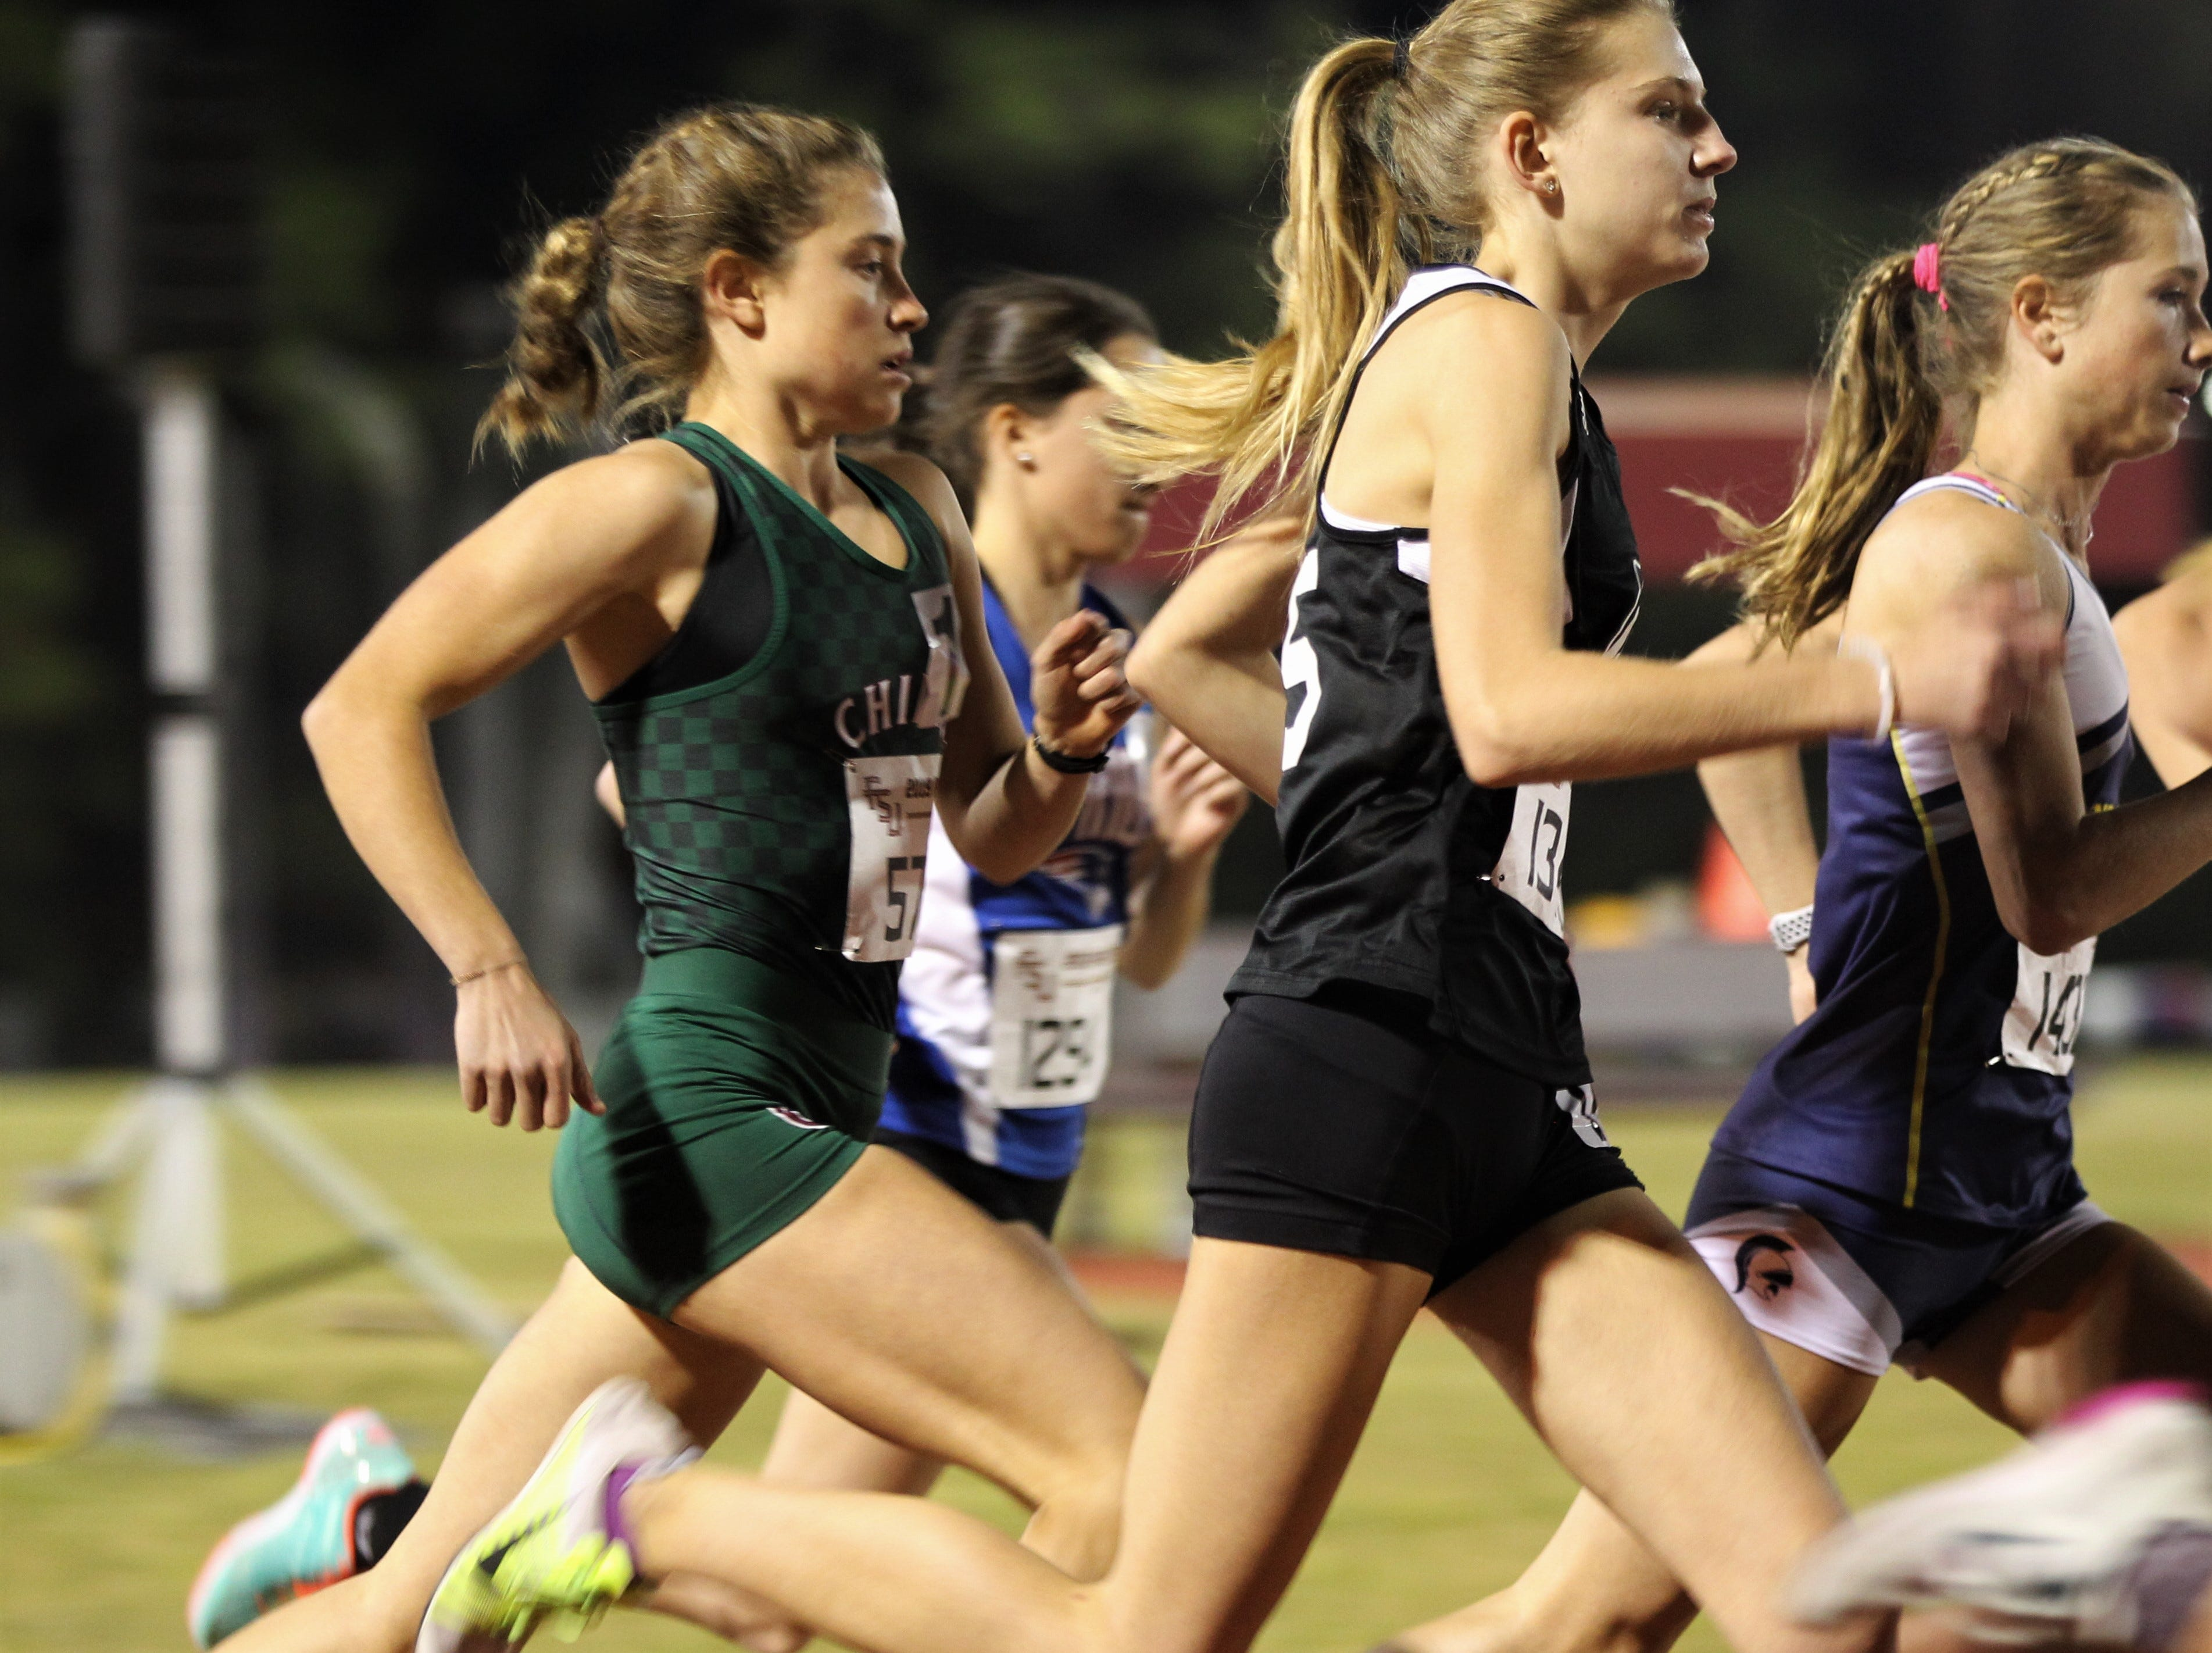 Chiles junior Alyson Churchill competes in the 3200-meter invitational race during the 40th annual FSU Relays at Mike Long Track on Friday night, March 22, 2019.